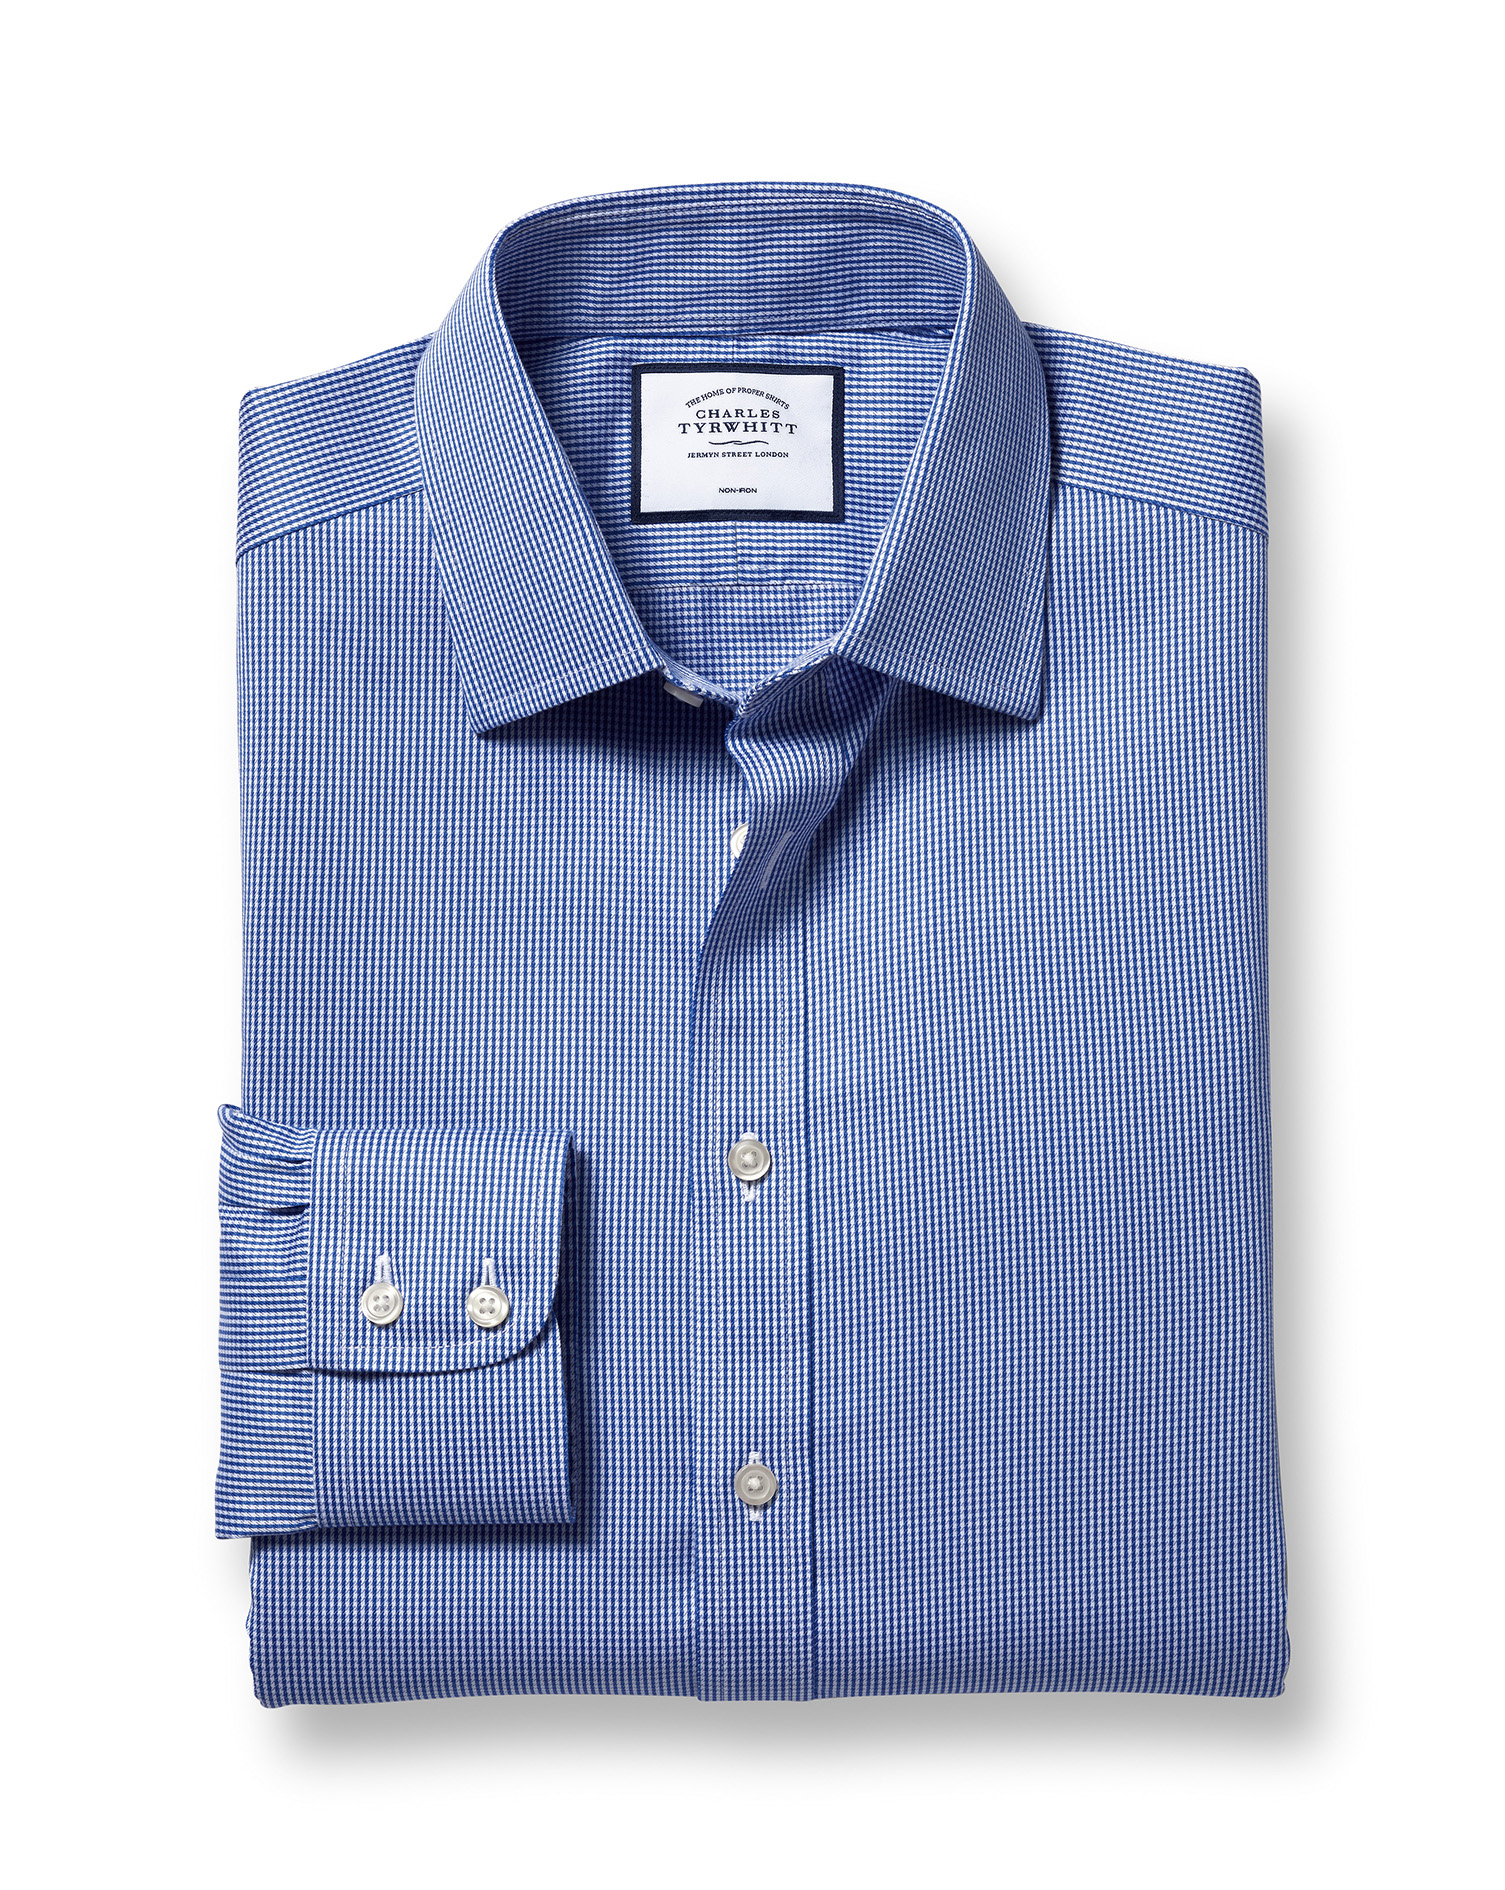 Classic Fit Non-Iron Royal Blue Puppytooth Cotton Formal Shirt Double Cuff Size 16.5/36 by Charles T